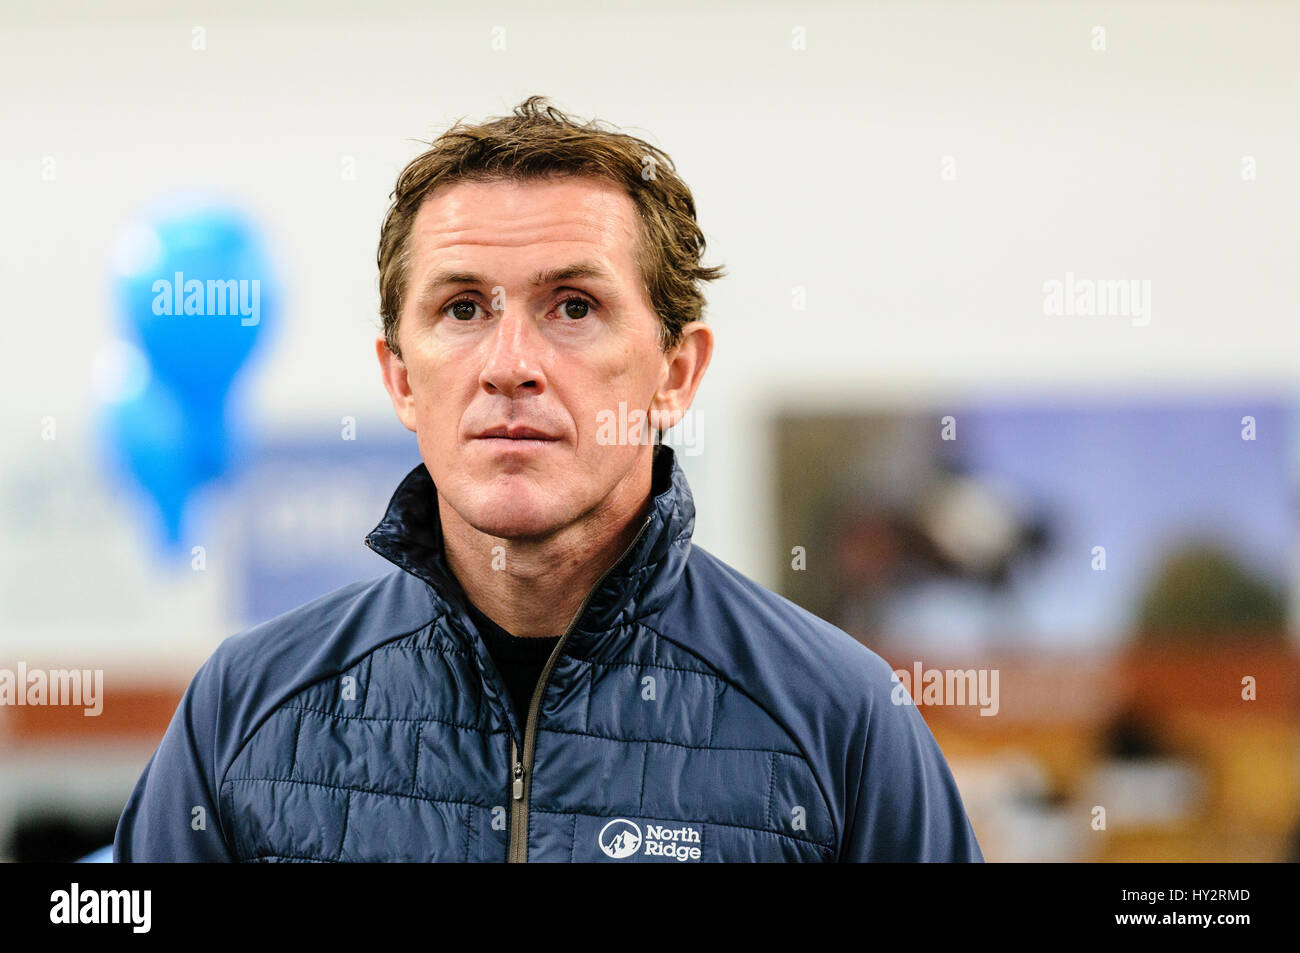 NEWTOWNABBEY, NORTHERN IRELAND. 14 MAY 2016 - Champion Jockey AP McCoy opens the first Go Outdoors store in Ireland. - Stock Image